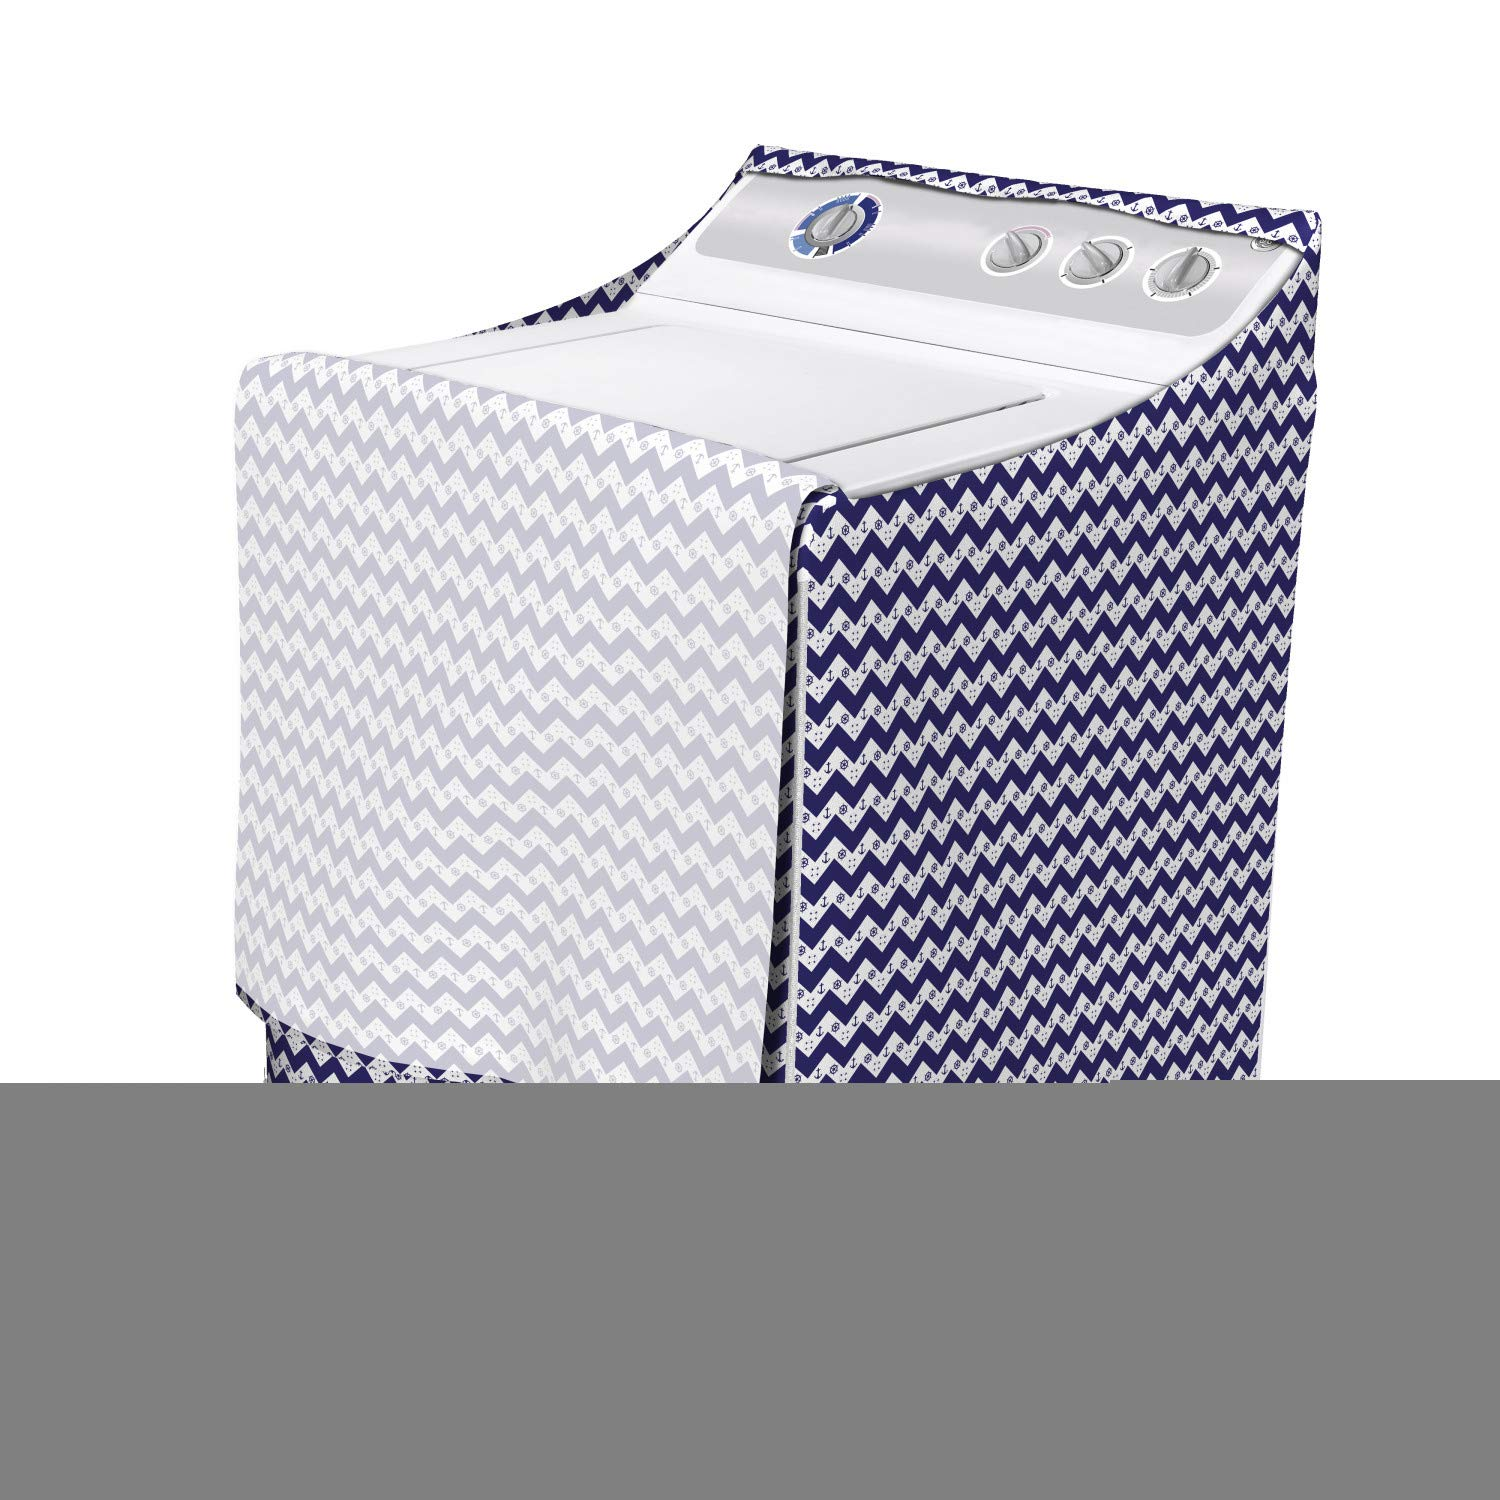 Contemporary Triangles and Rhombuses Pattern Monochrome Modern Art White Black 29 x 28 x 40 Easy to Use Bathroom Accent Fabric Lunarable Black and White Washer Cover